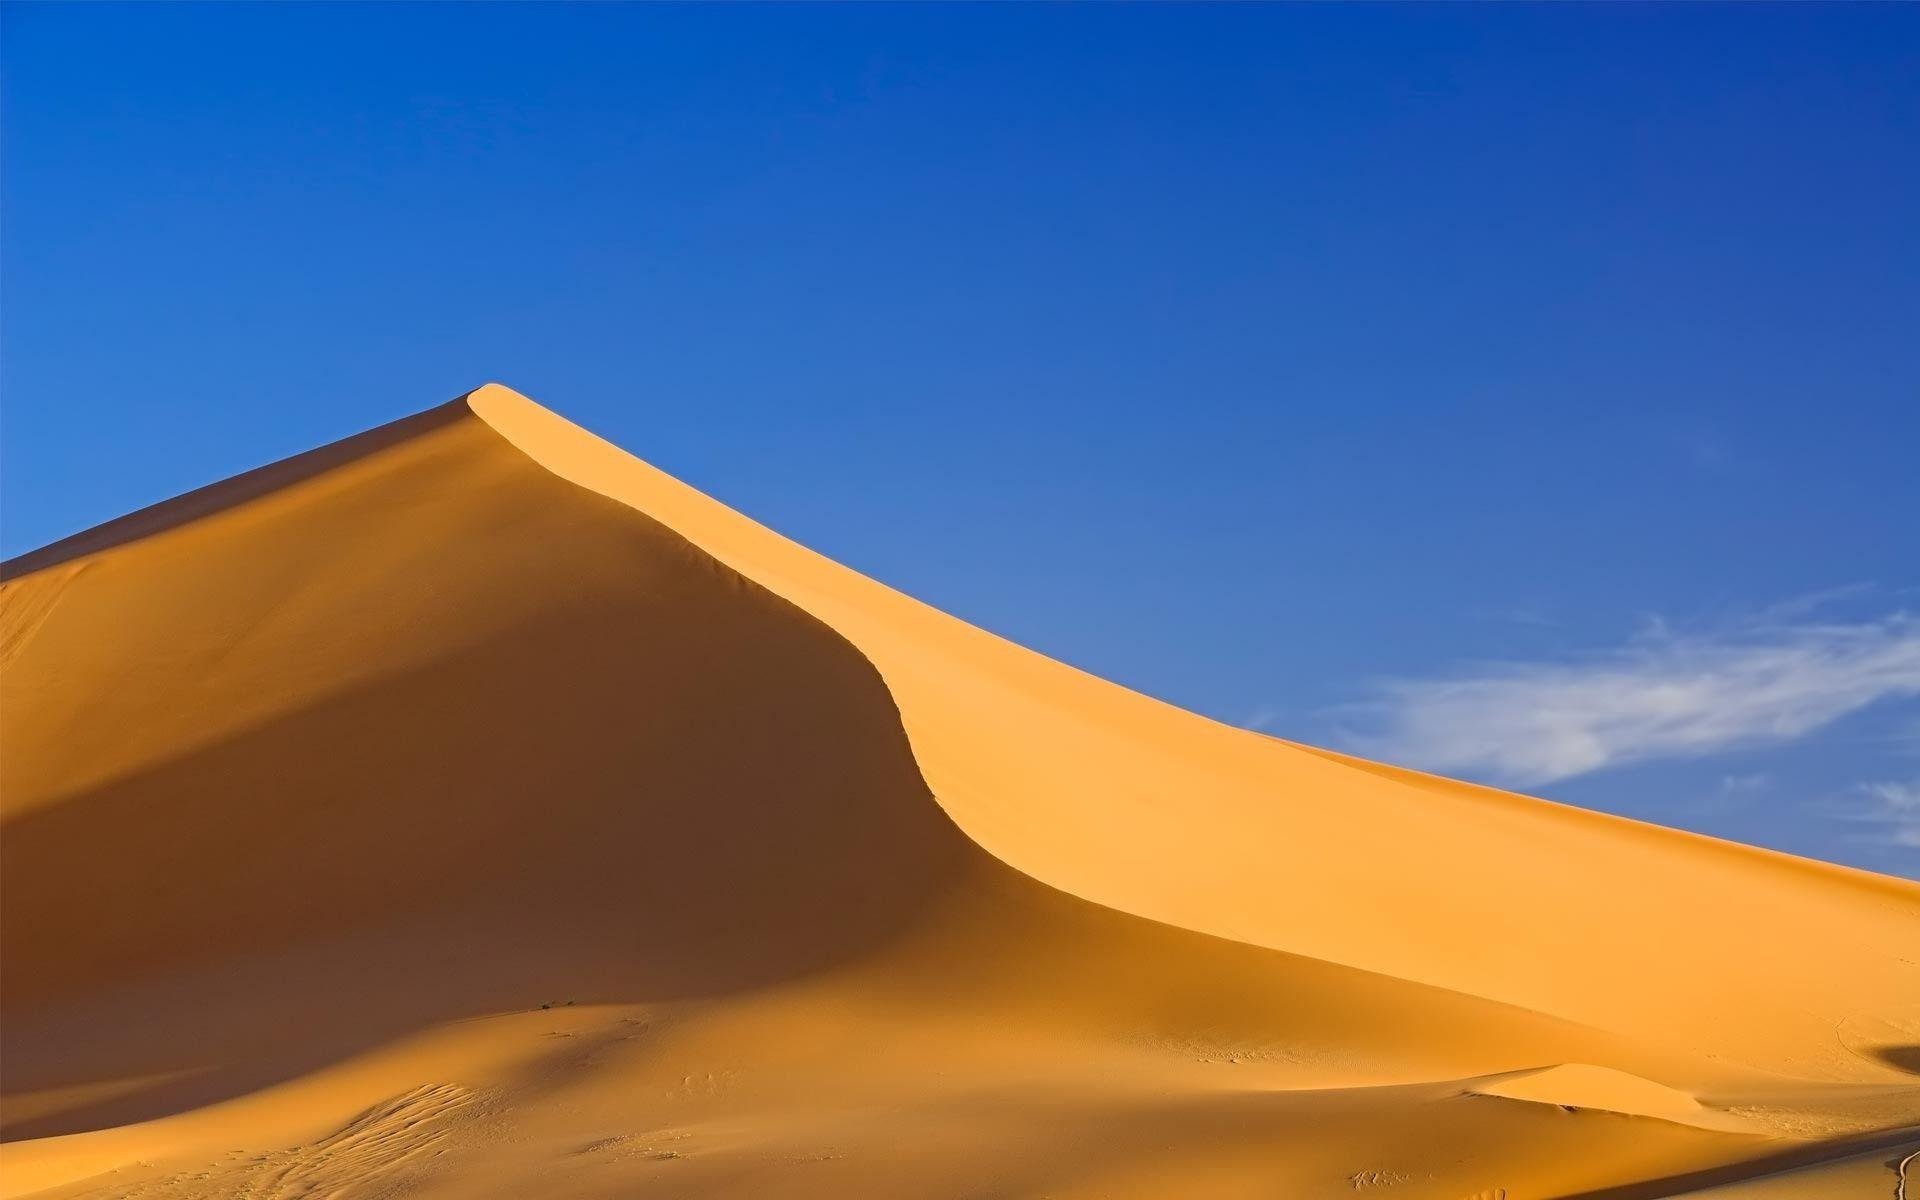 Sand Dune Wallpapers Top Free Sand Dune Backgrounds Wallpaperaccess